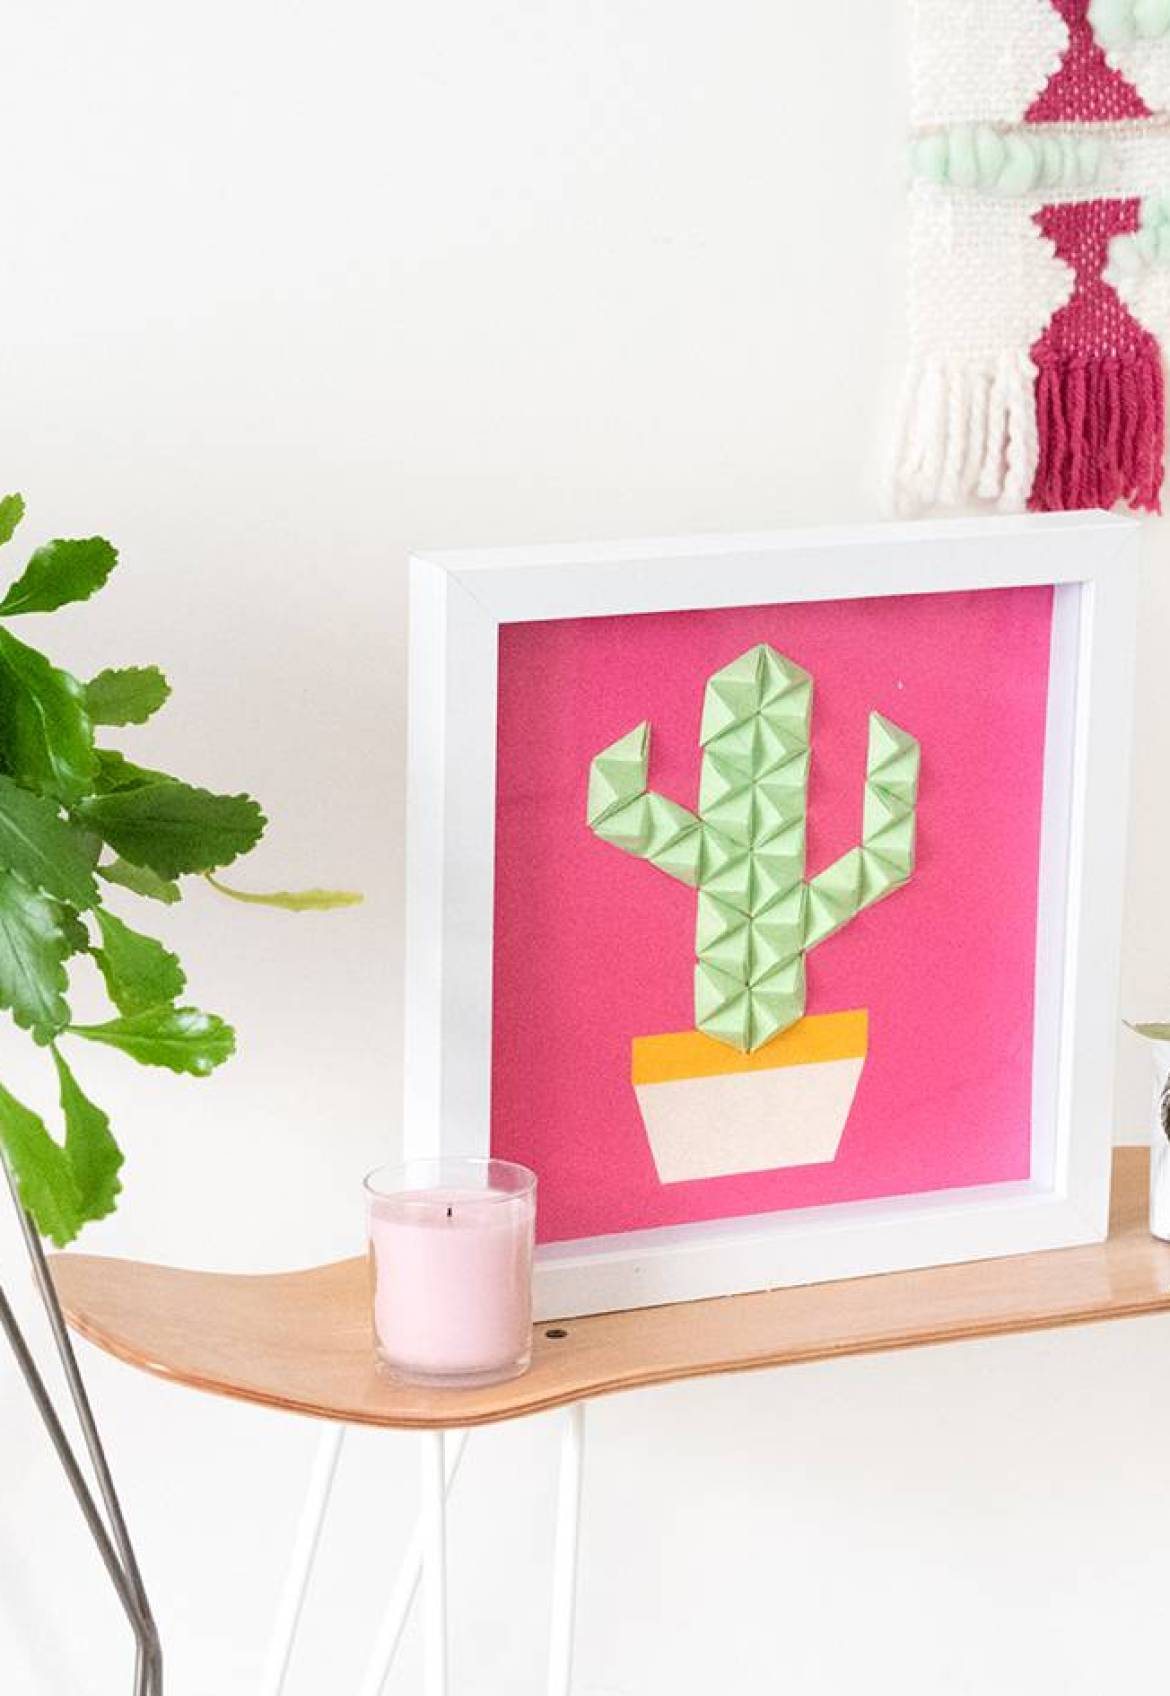 Make this: Easy DIY origami wall art in under half an hour!